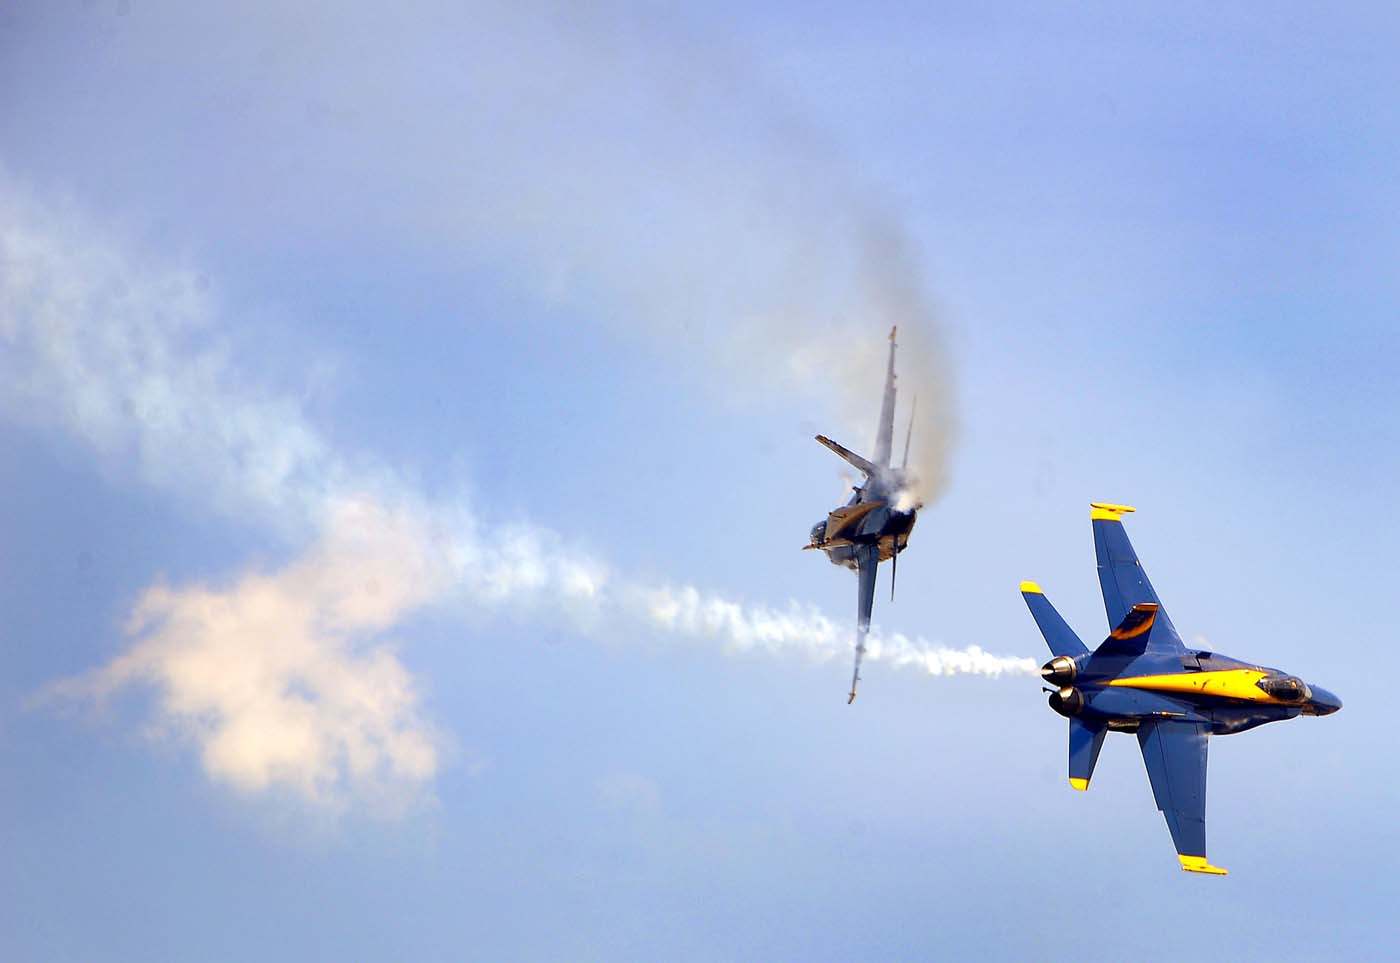 Two Blue Angels - Boeing F/A-18 Super Hornet planes - break away from each other, participating in the air show during the weekend-long Star Spangled Sailabration 200 at Fort McHenry Saturday, Jun 16, 2012. (Karl Merton Ferron/Baltimore Sun)